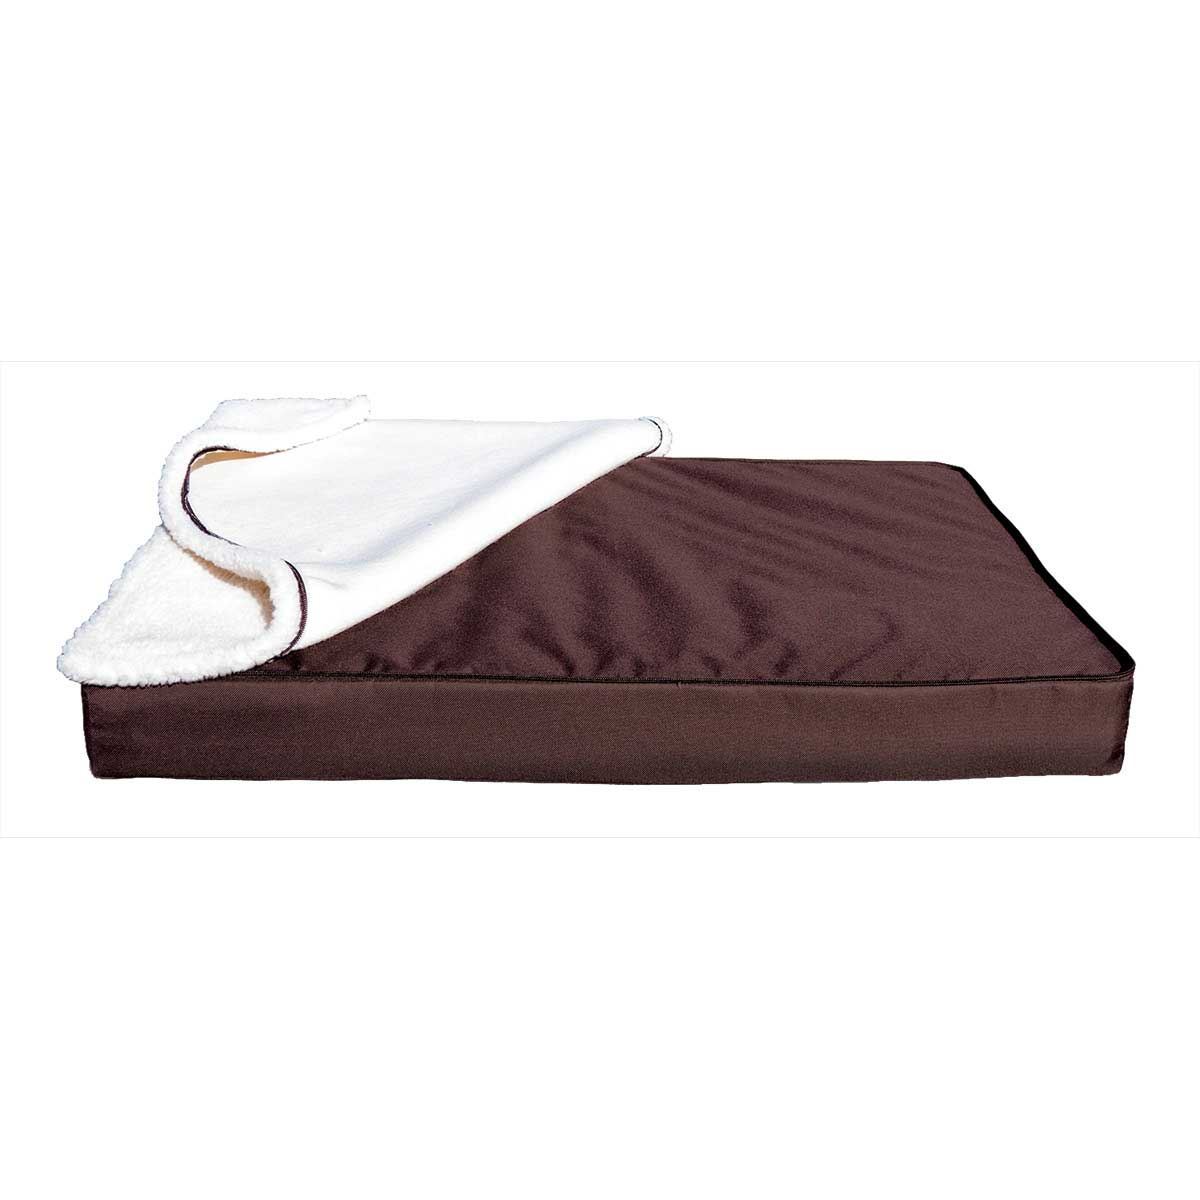 Nap Removable Sherpa Top Indoor/Outdoor Pillows Espresso 20 inch by 30 inch